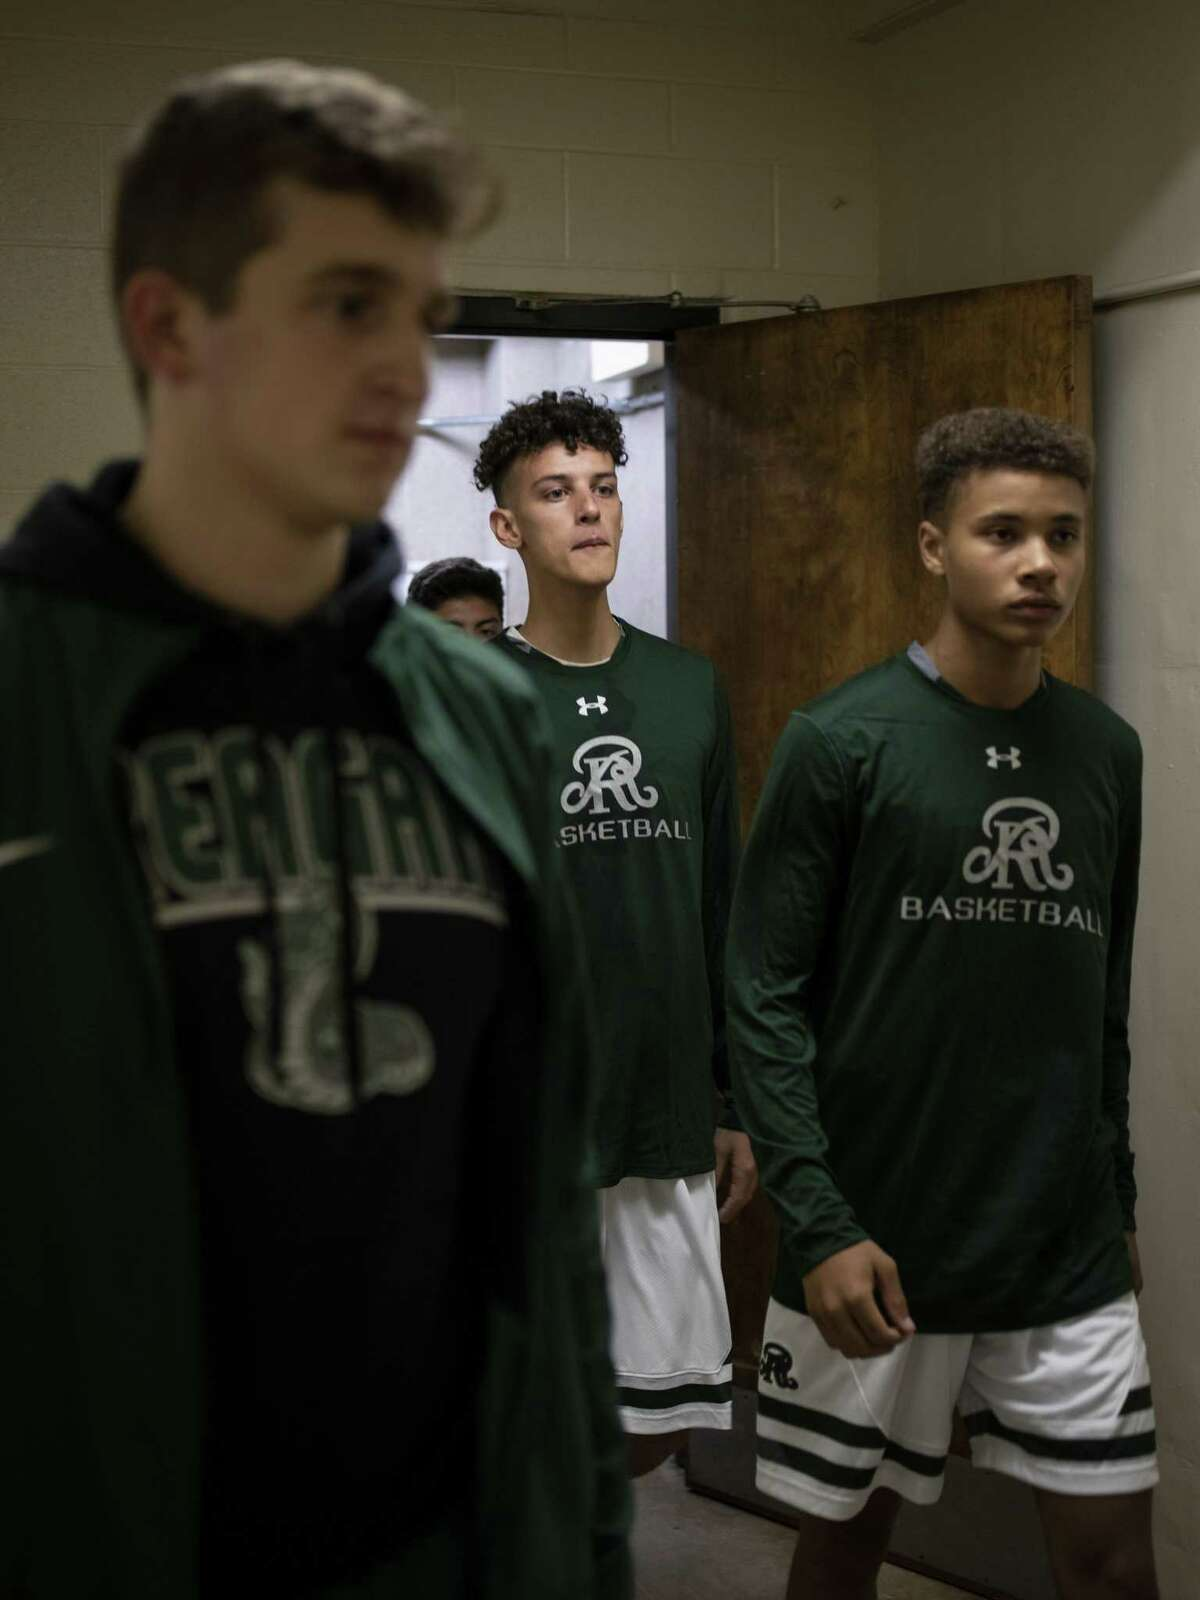 Senior Kaeyel Moore, no. 22, exits the locker room and returns to the basketball court for the Reagan High School Rattlers on Monday, November 12, 2018. Moore suffered a cardiac arrest on the practice gym 10 months ago. Head coach John Hirst said that it's good to have him back.